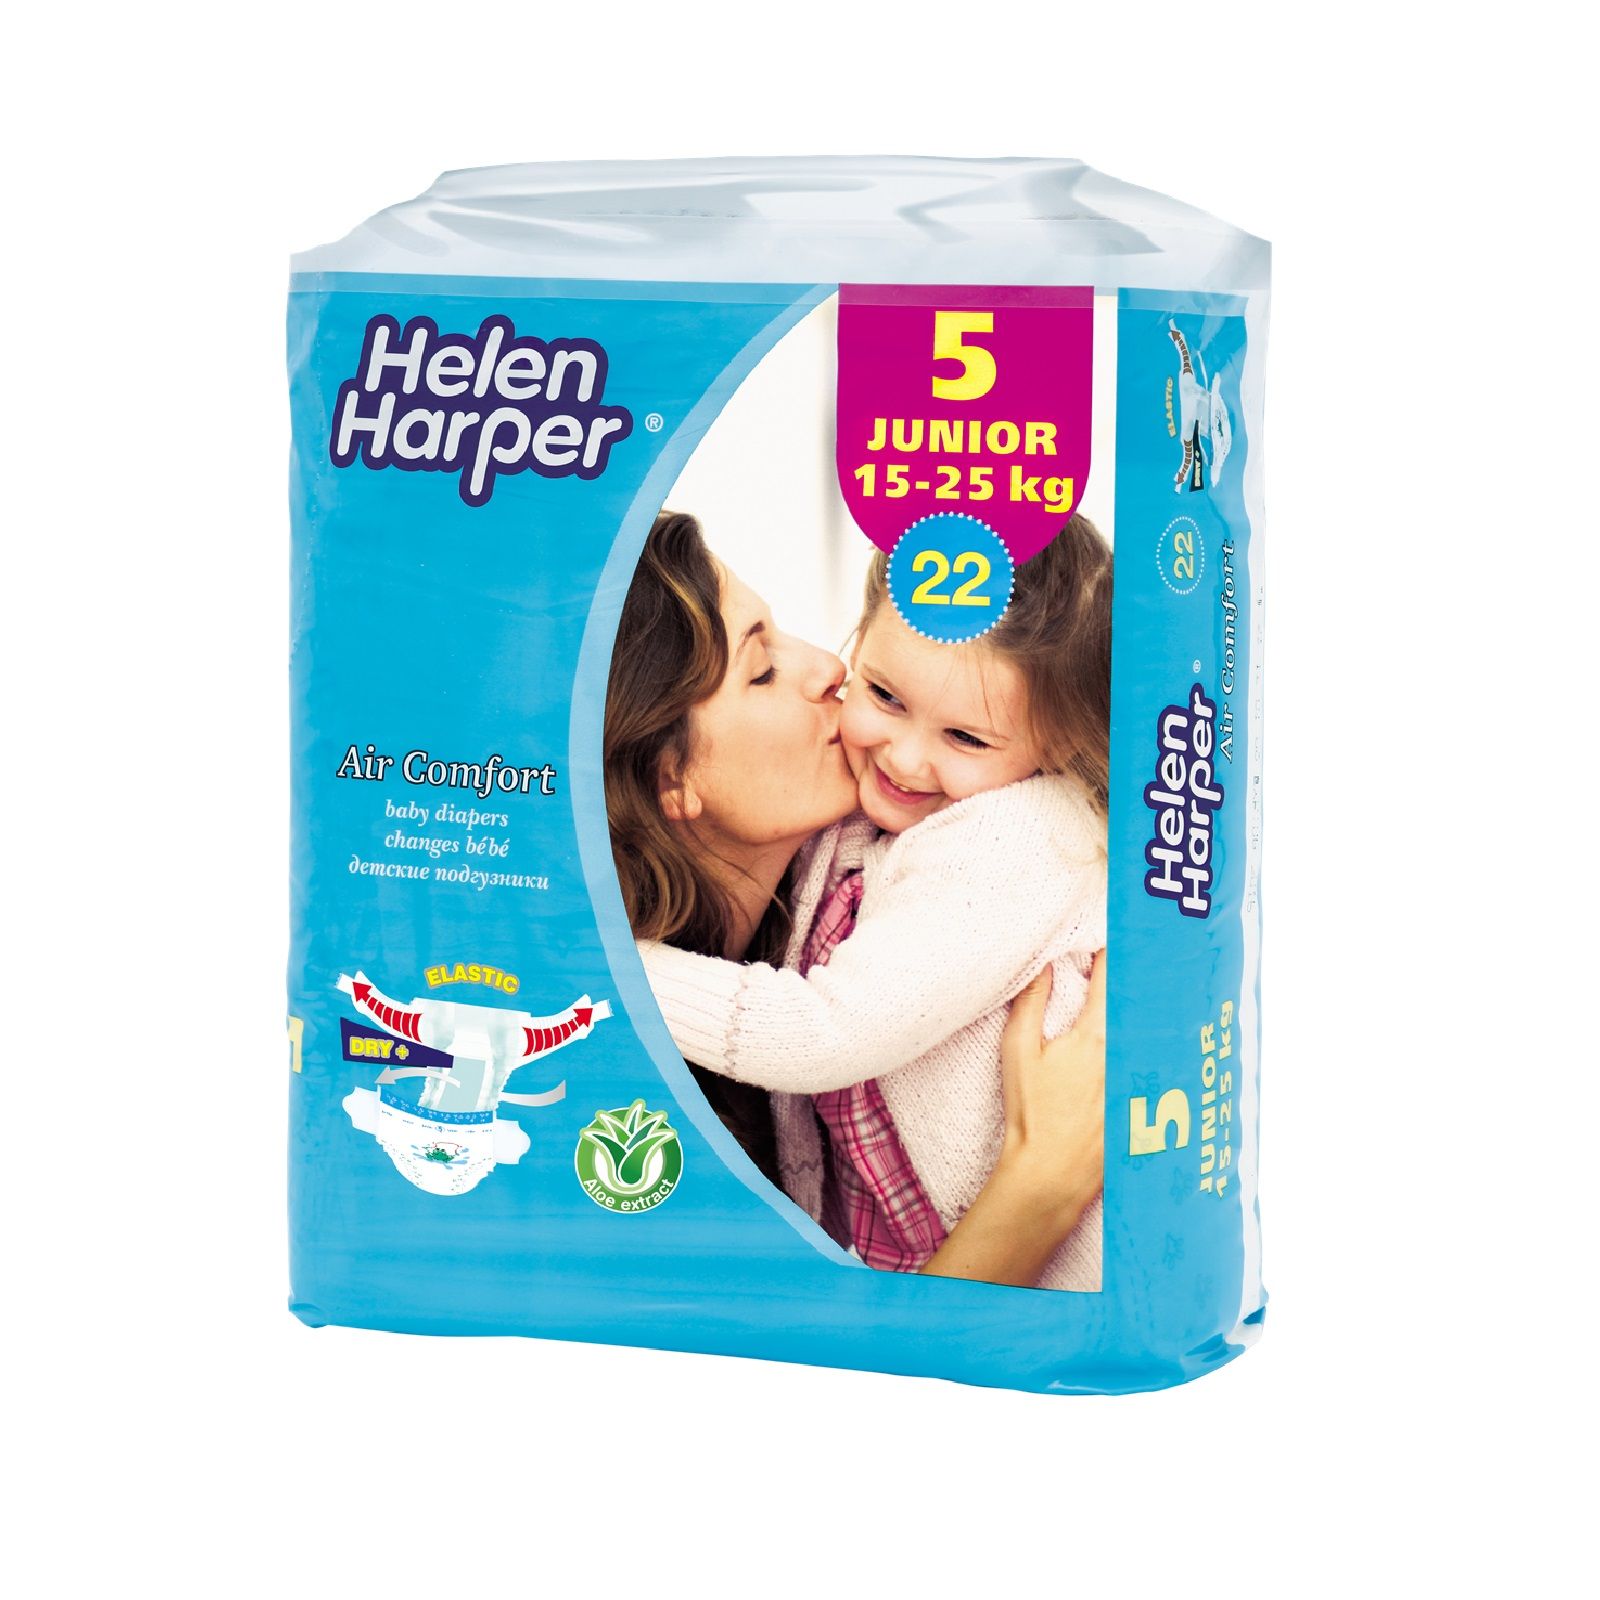 Подгузники Helen Harper Air Comfort Junior 15-25 кг (22 шт) от Младенец.ru